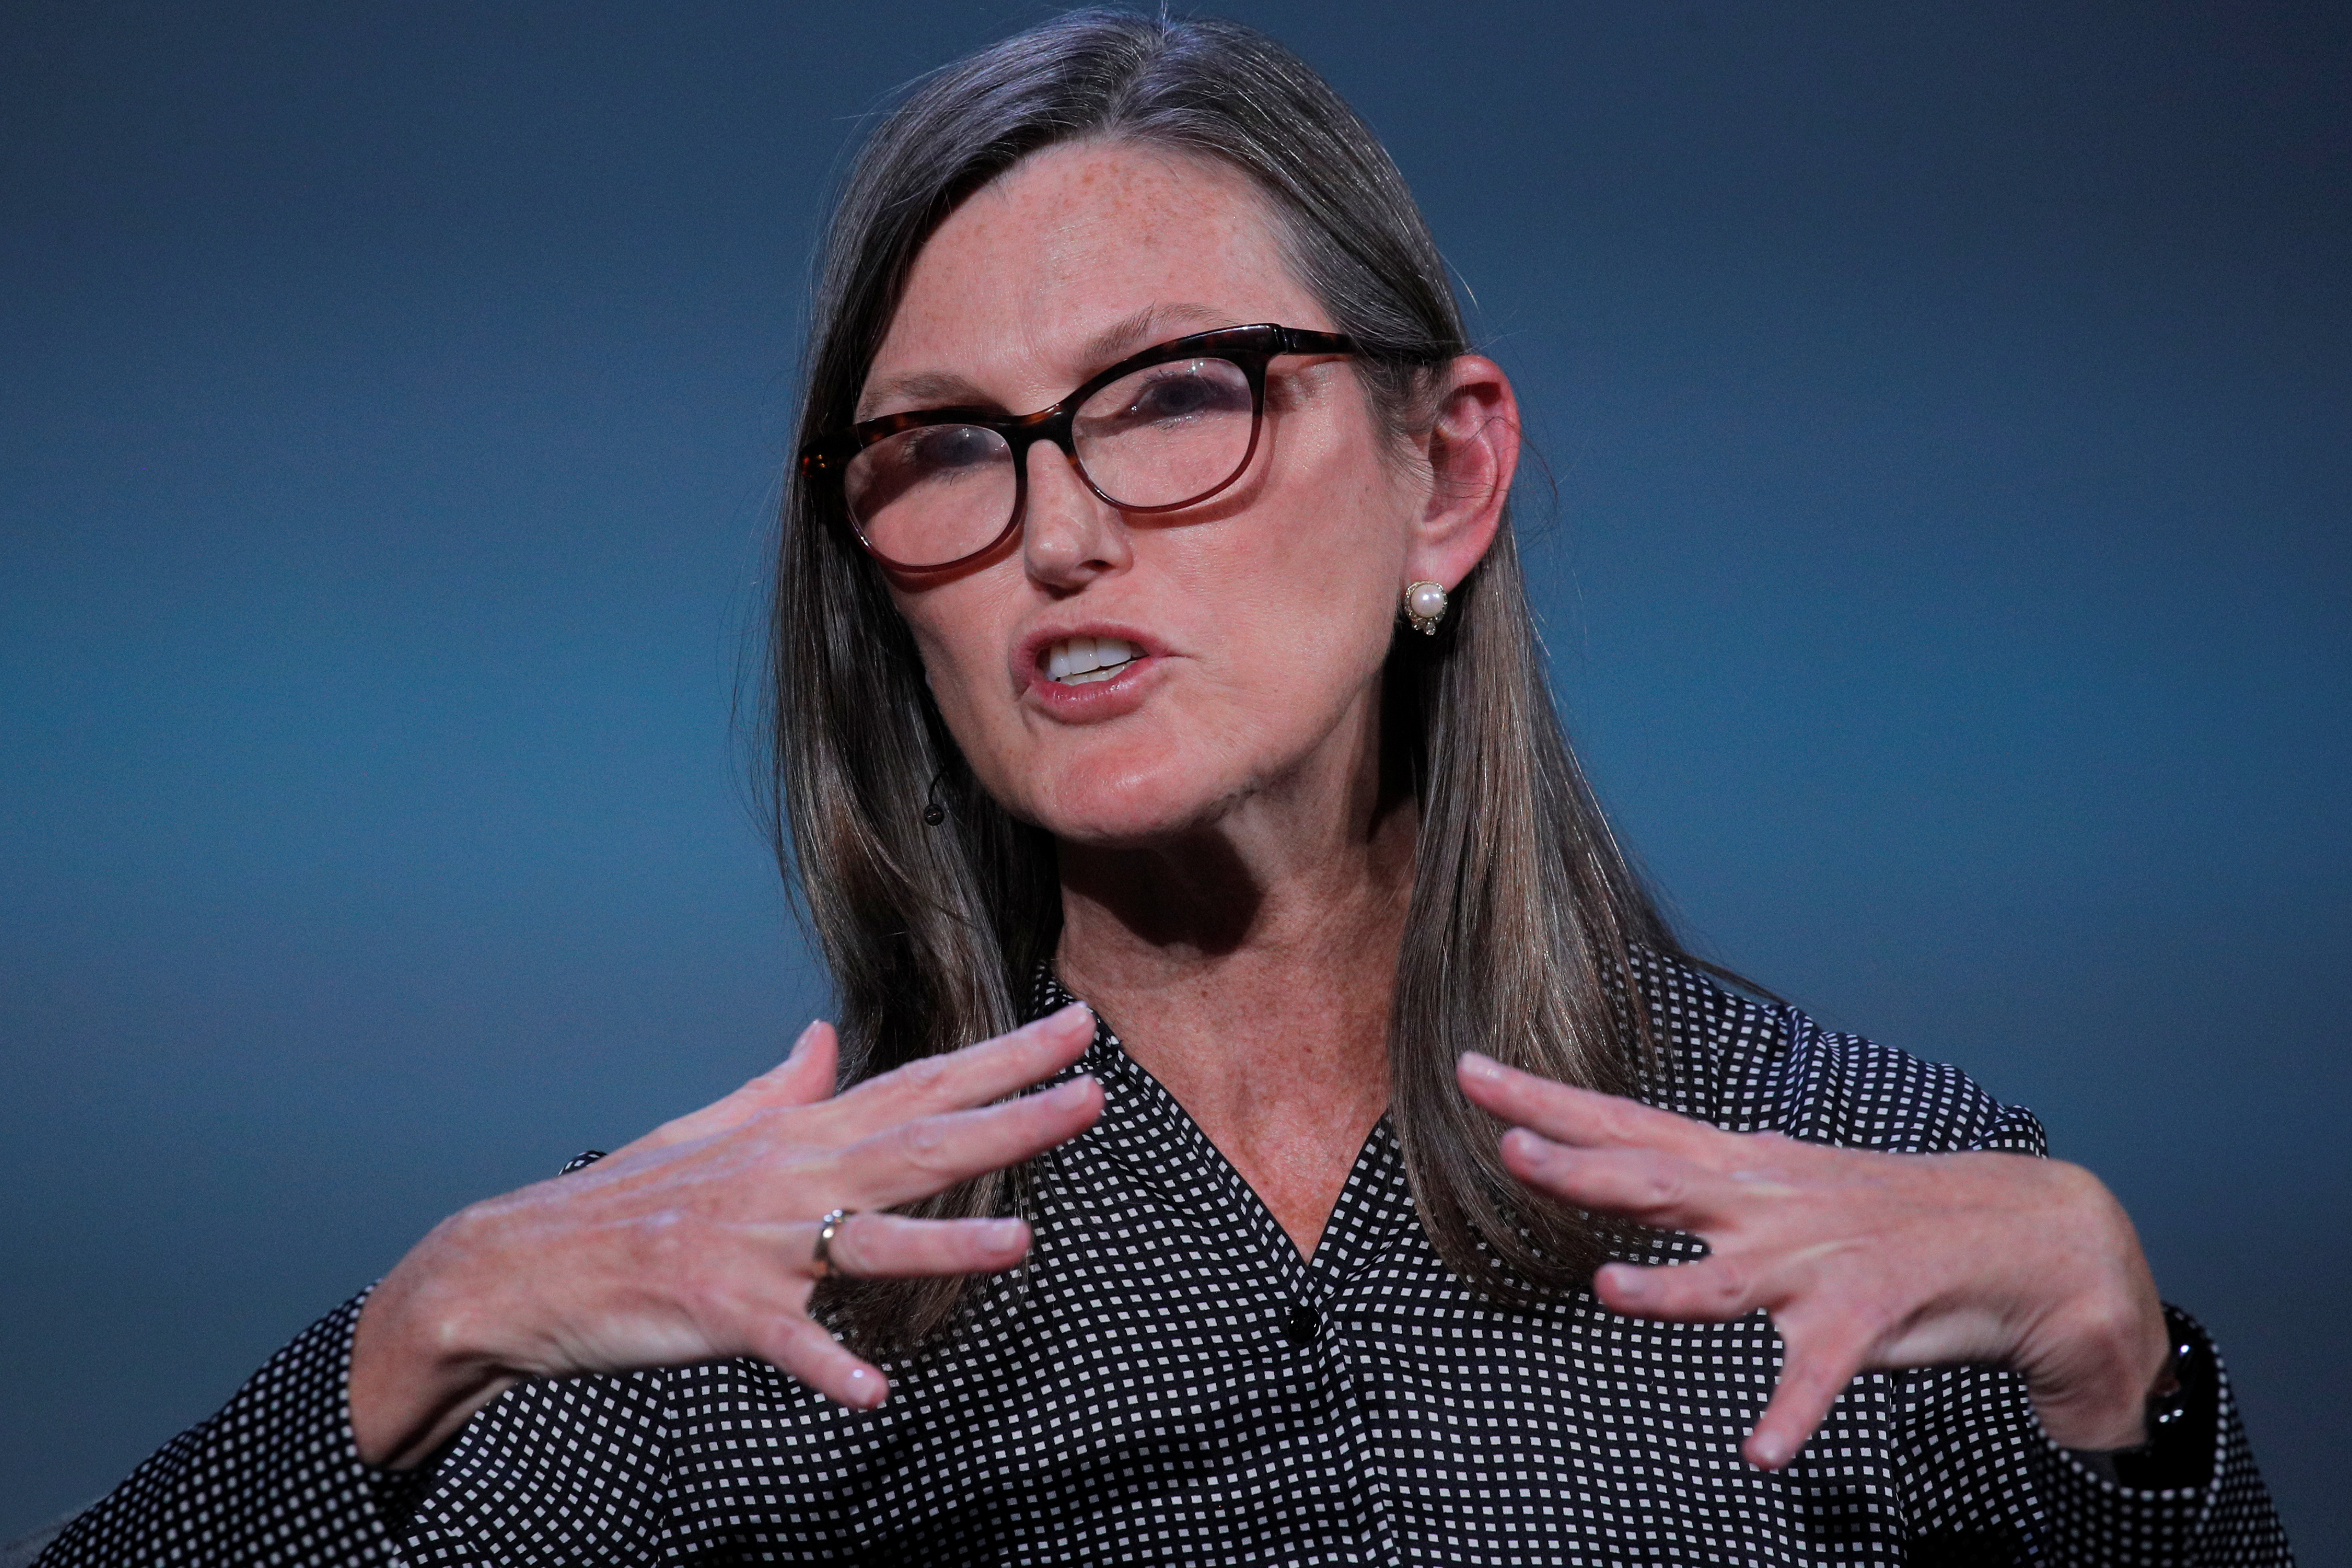 Cathie Wood, founder and CEO of ARK Investment Management LLC, speaks during the Skybridge Capital SALT New York 2021 conference in New York City, U.S., September 13, 2021.  REUTERS/Brendan McDermid